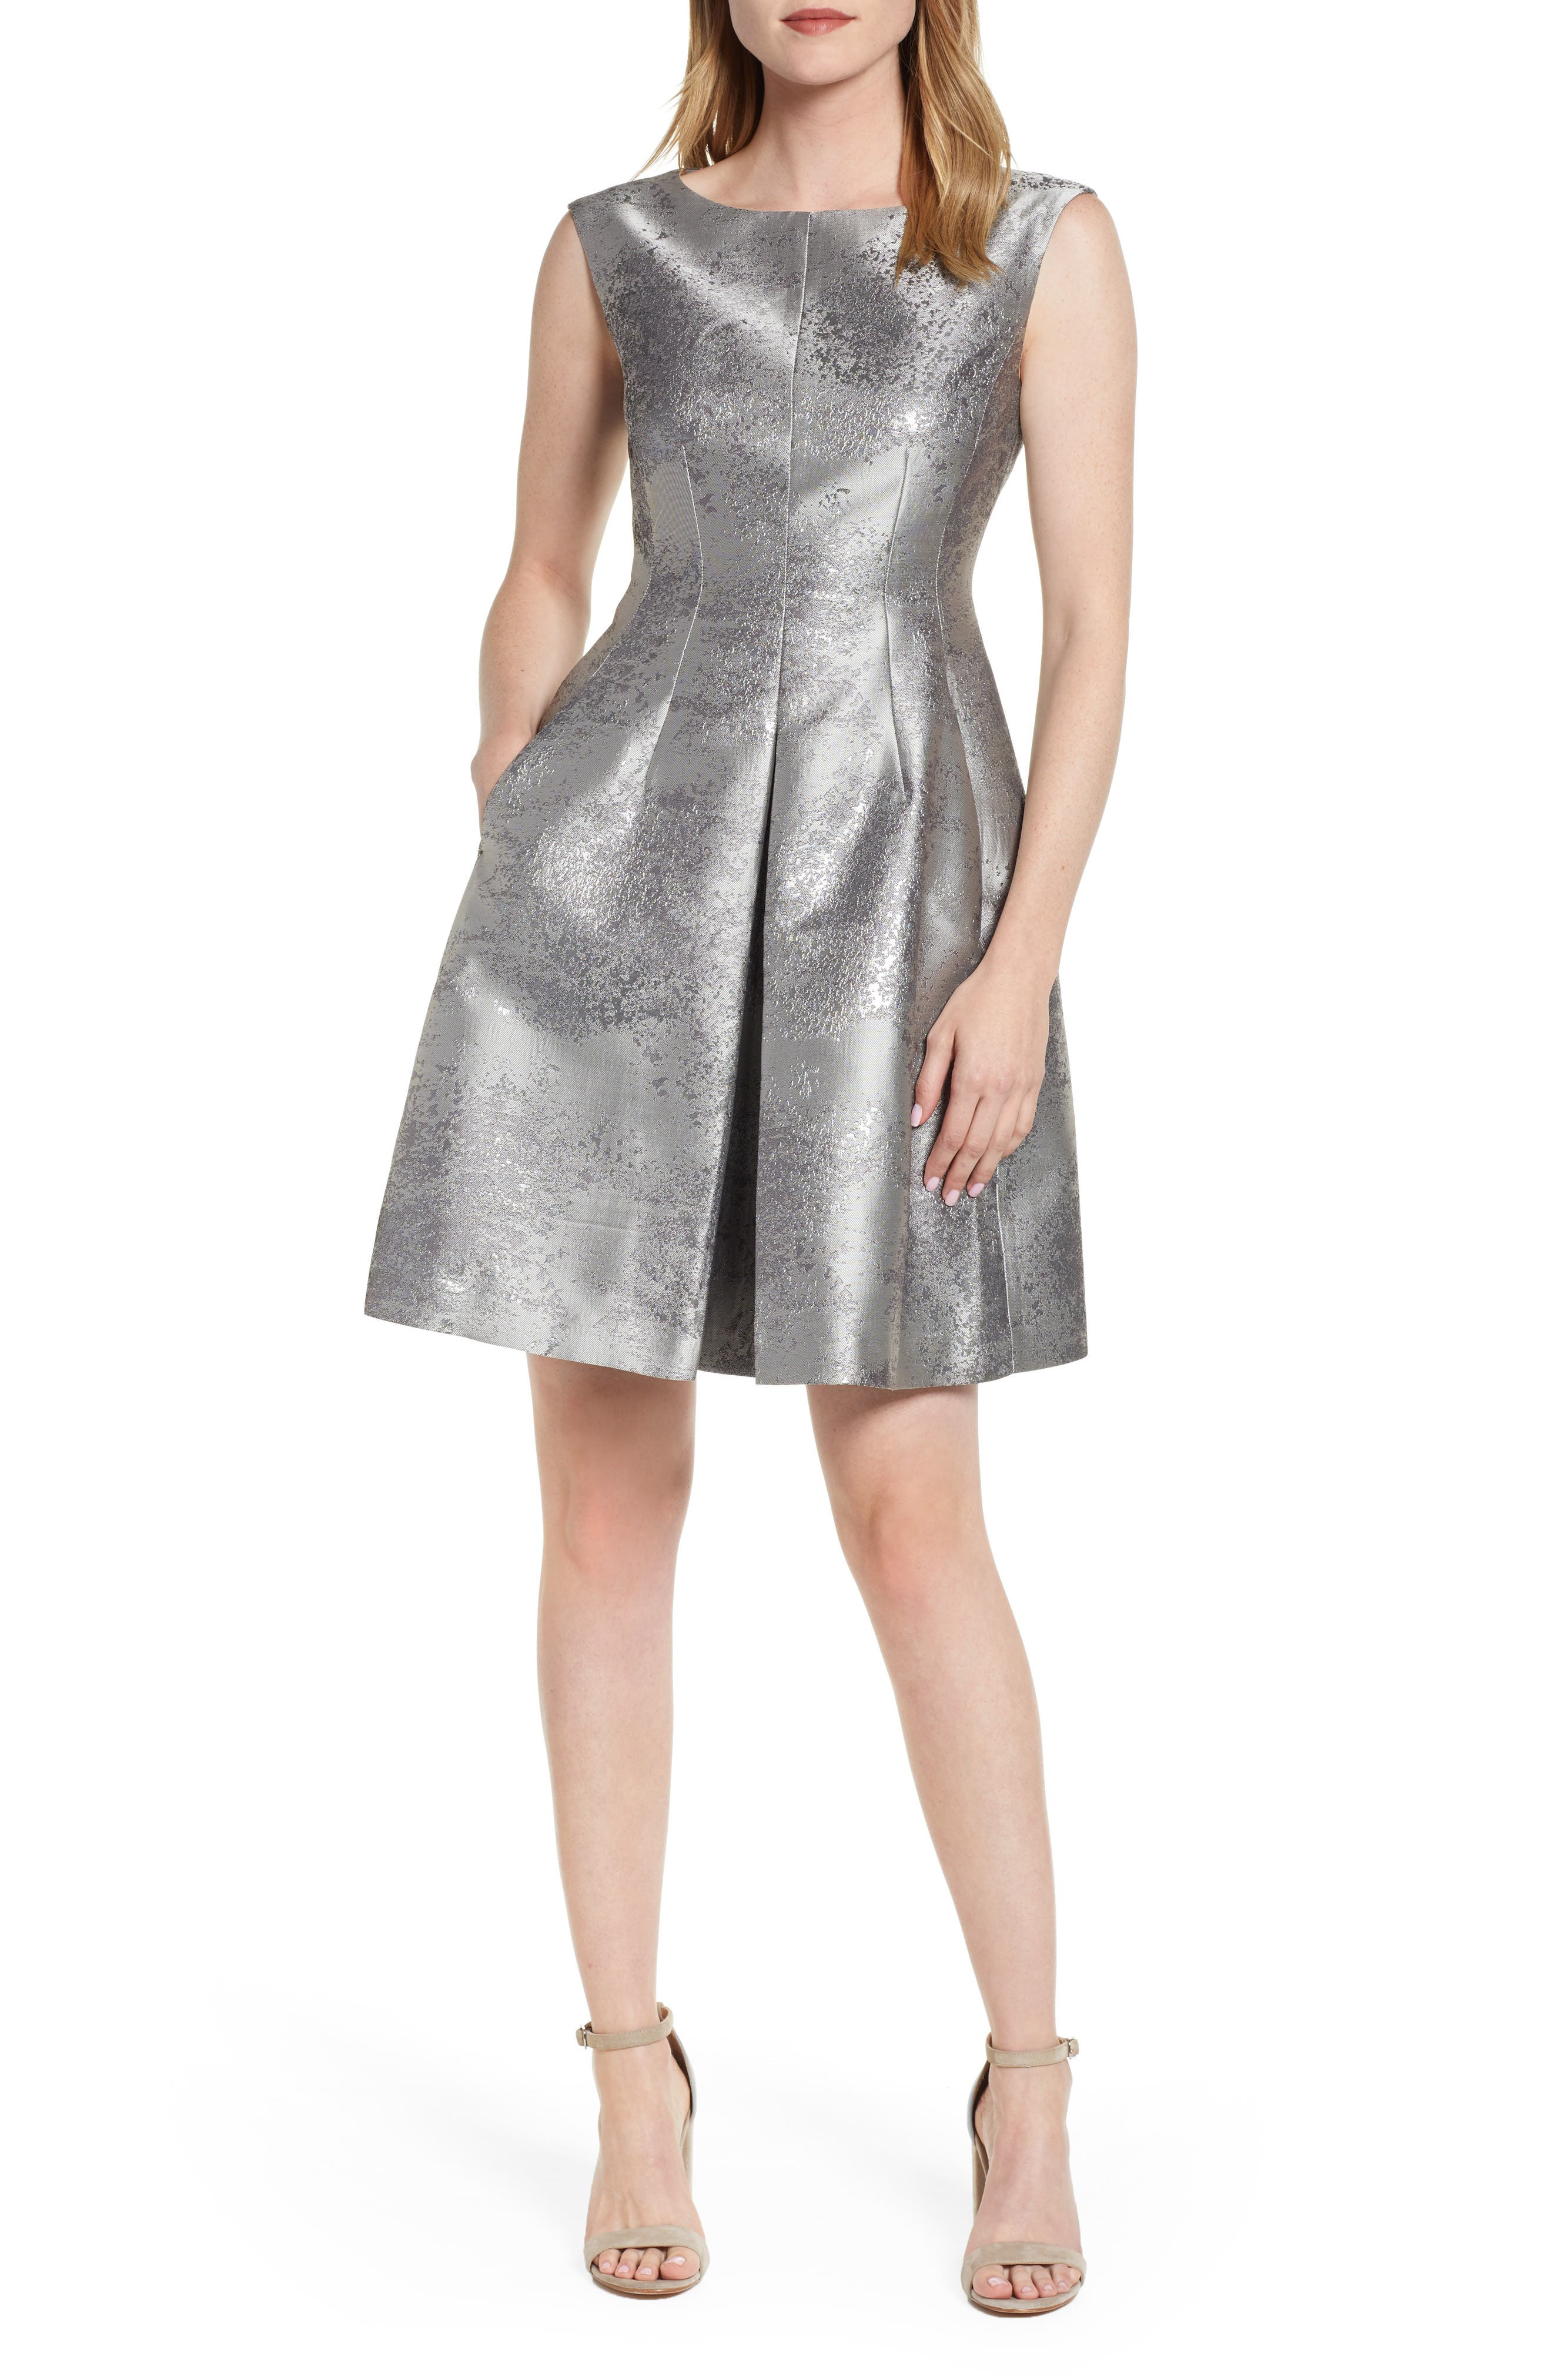 ANNE KLEIN,                             Satin Jacquard Fit & Flare Dress,                             Main thumbnail 1, color,                             SILVER COMBO